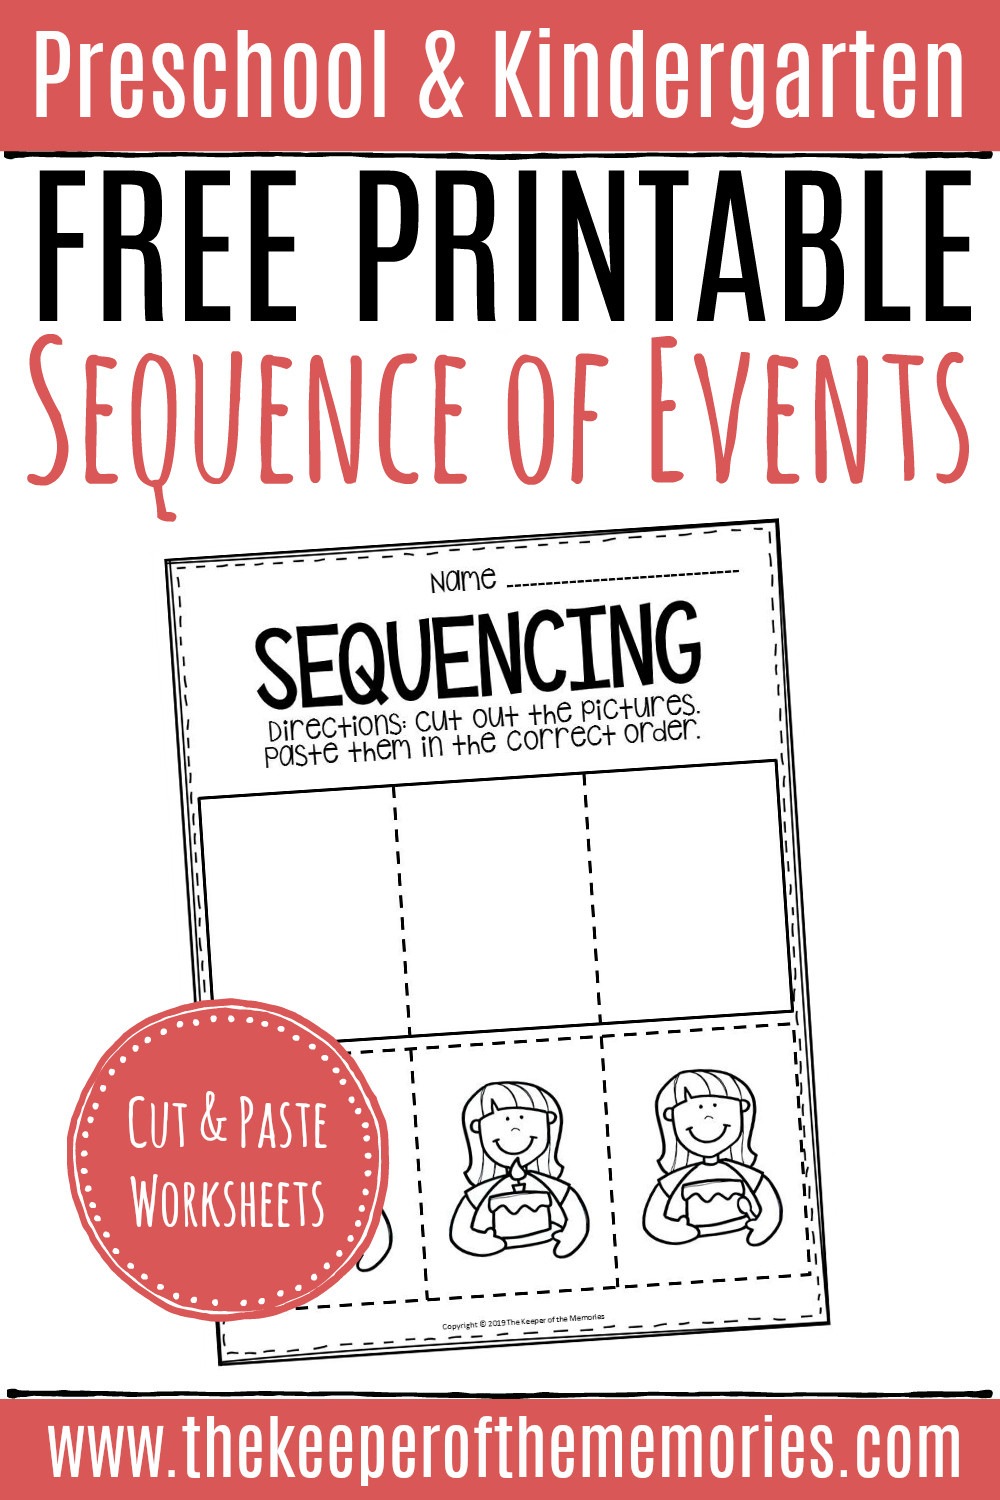 Preschool Sequencing Worksheets Free Printable Sequence Of events Worksheets